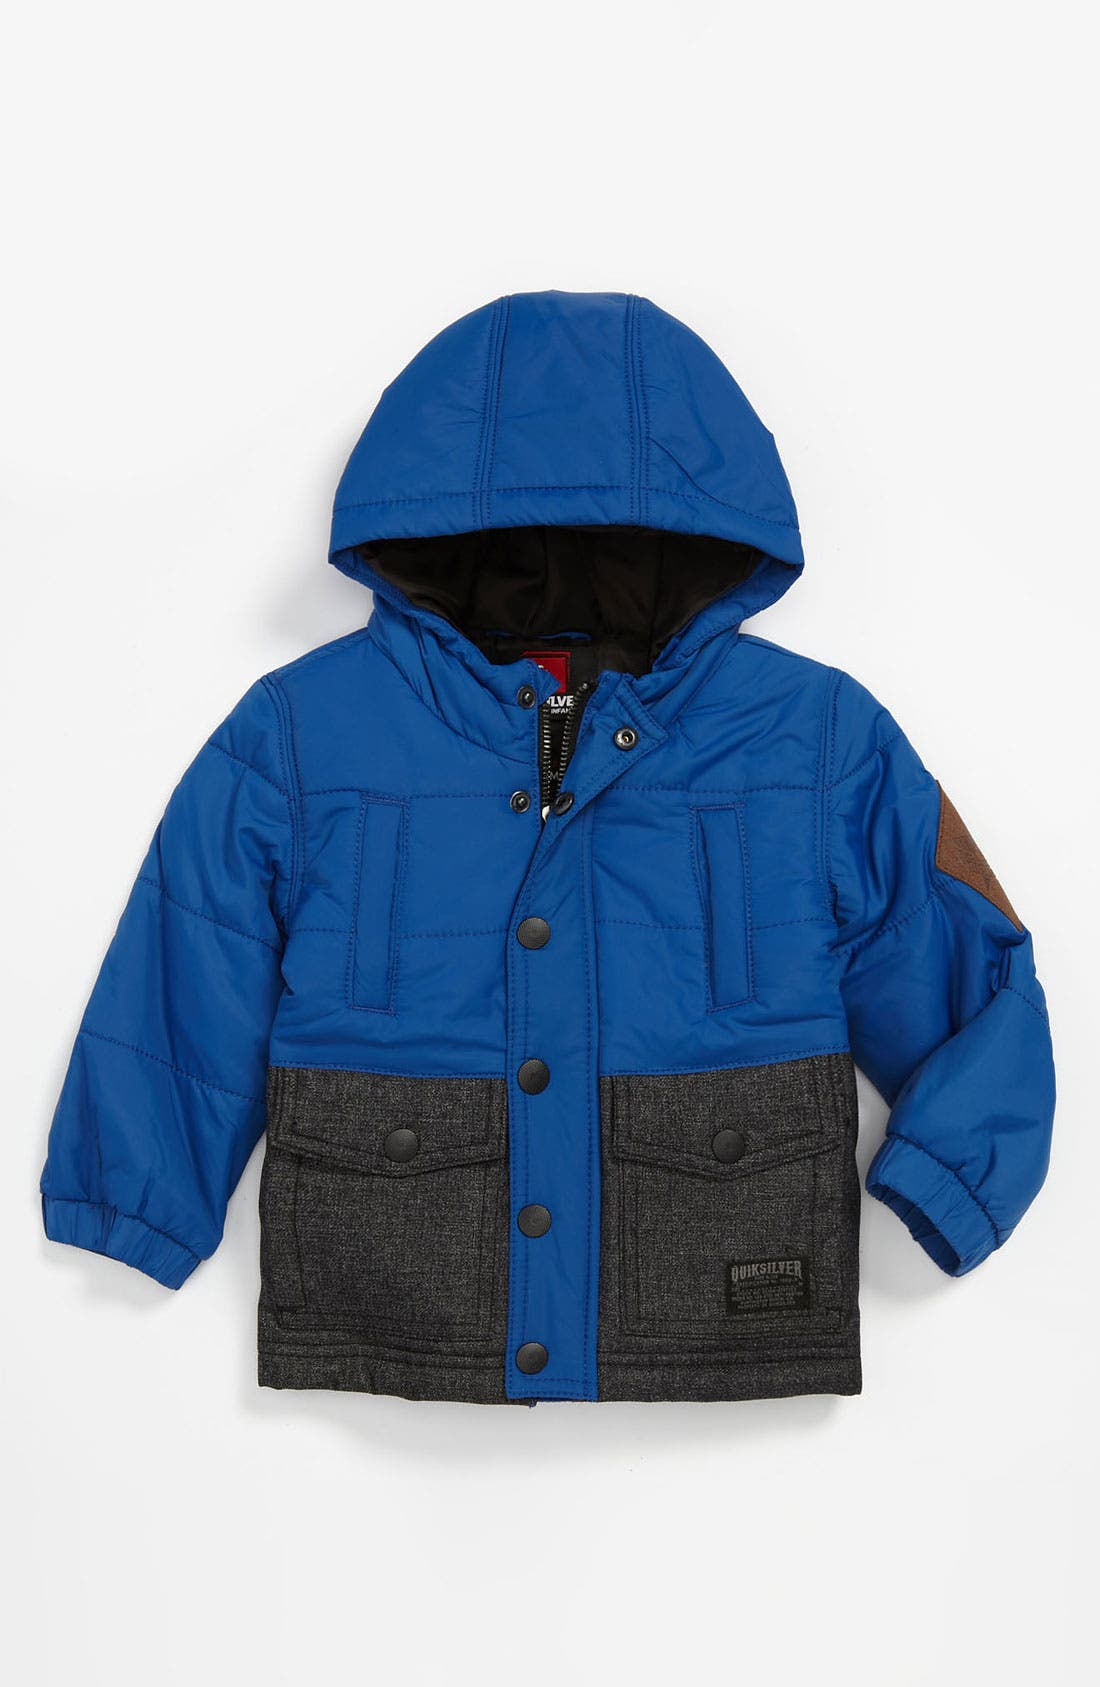 Main Image - Quiksilver 'Side Swipe' Jacket (Infant)